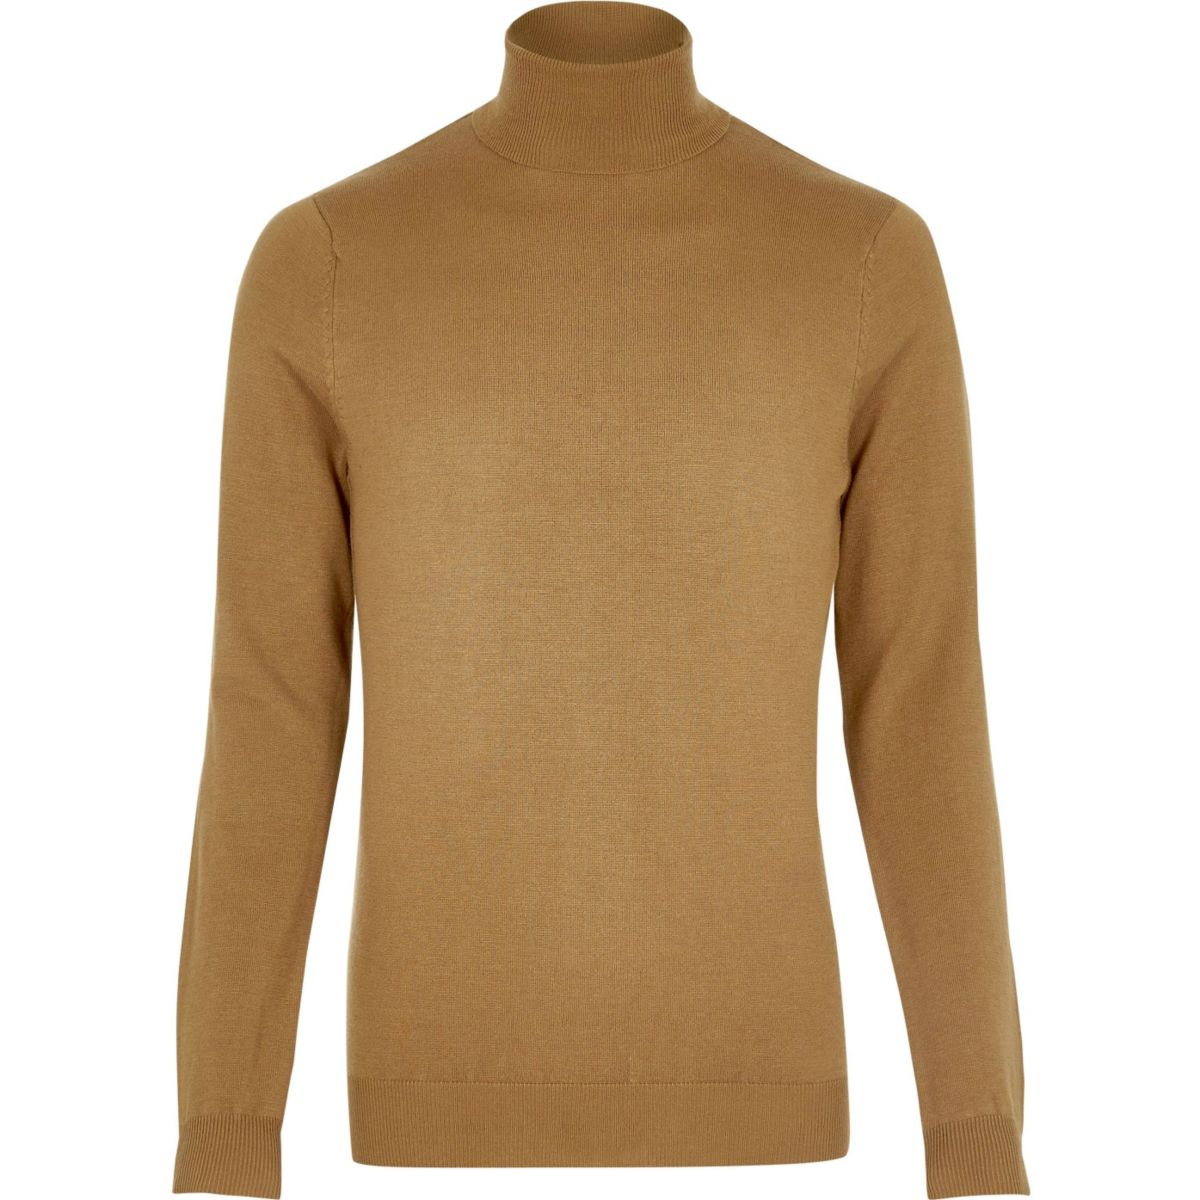 Brown roll neck sweater